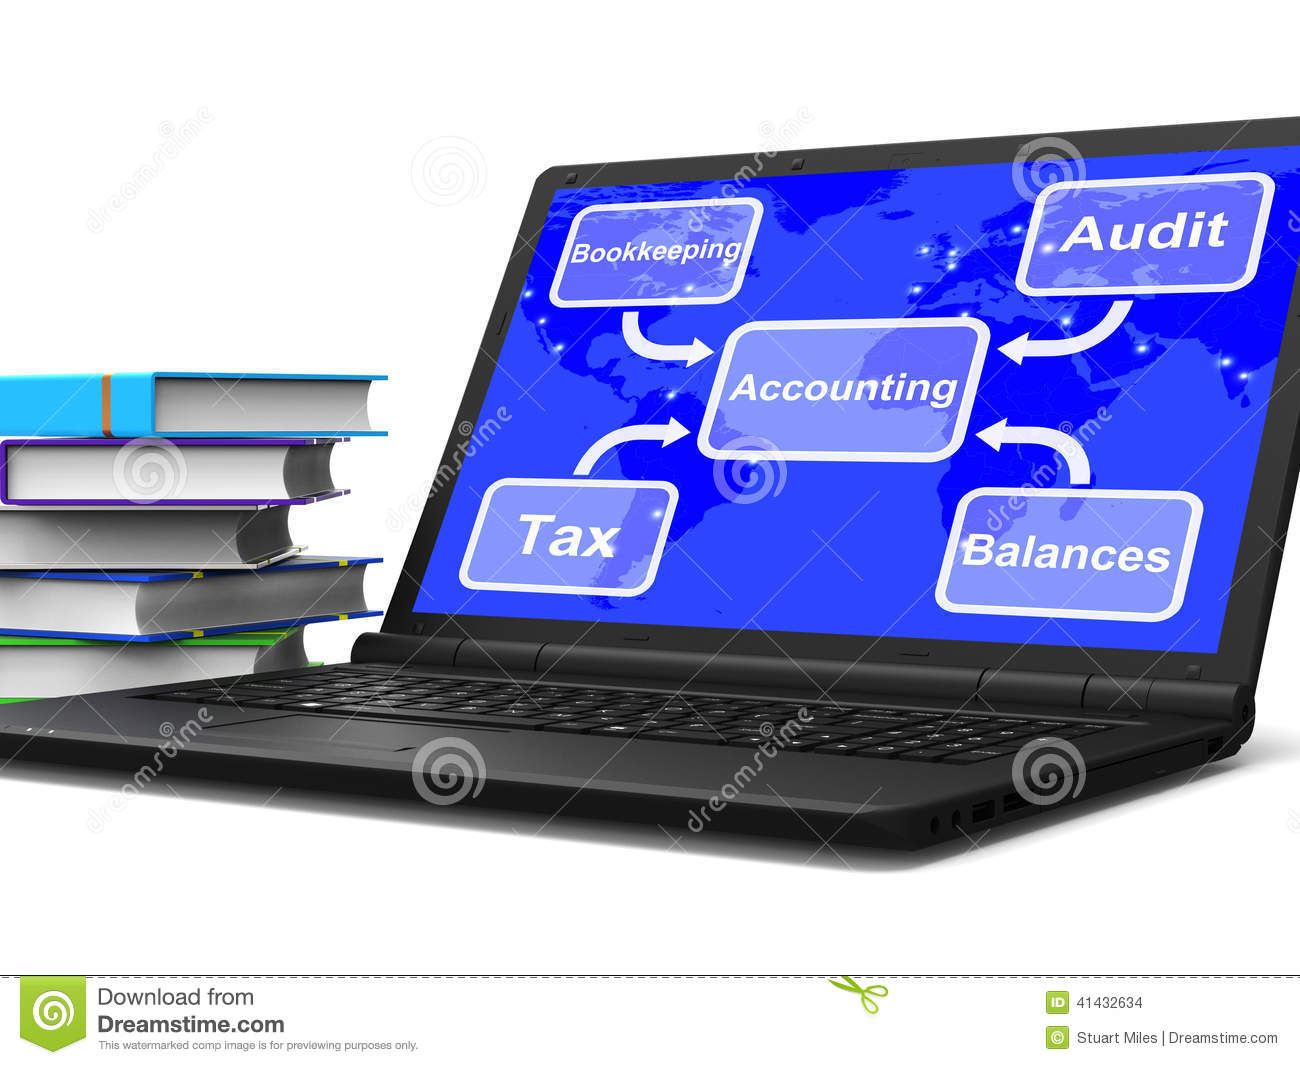 Bookkeeping possible majors